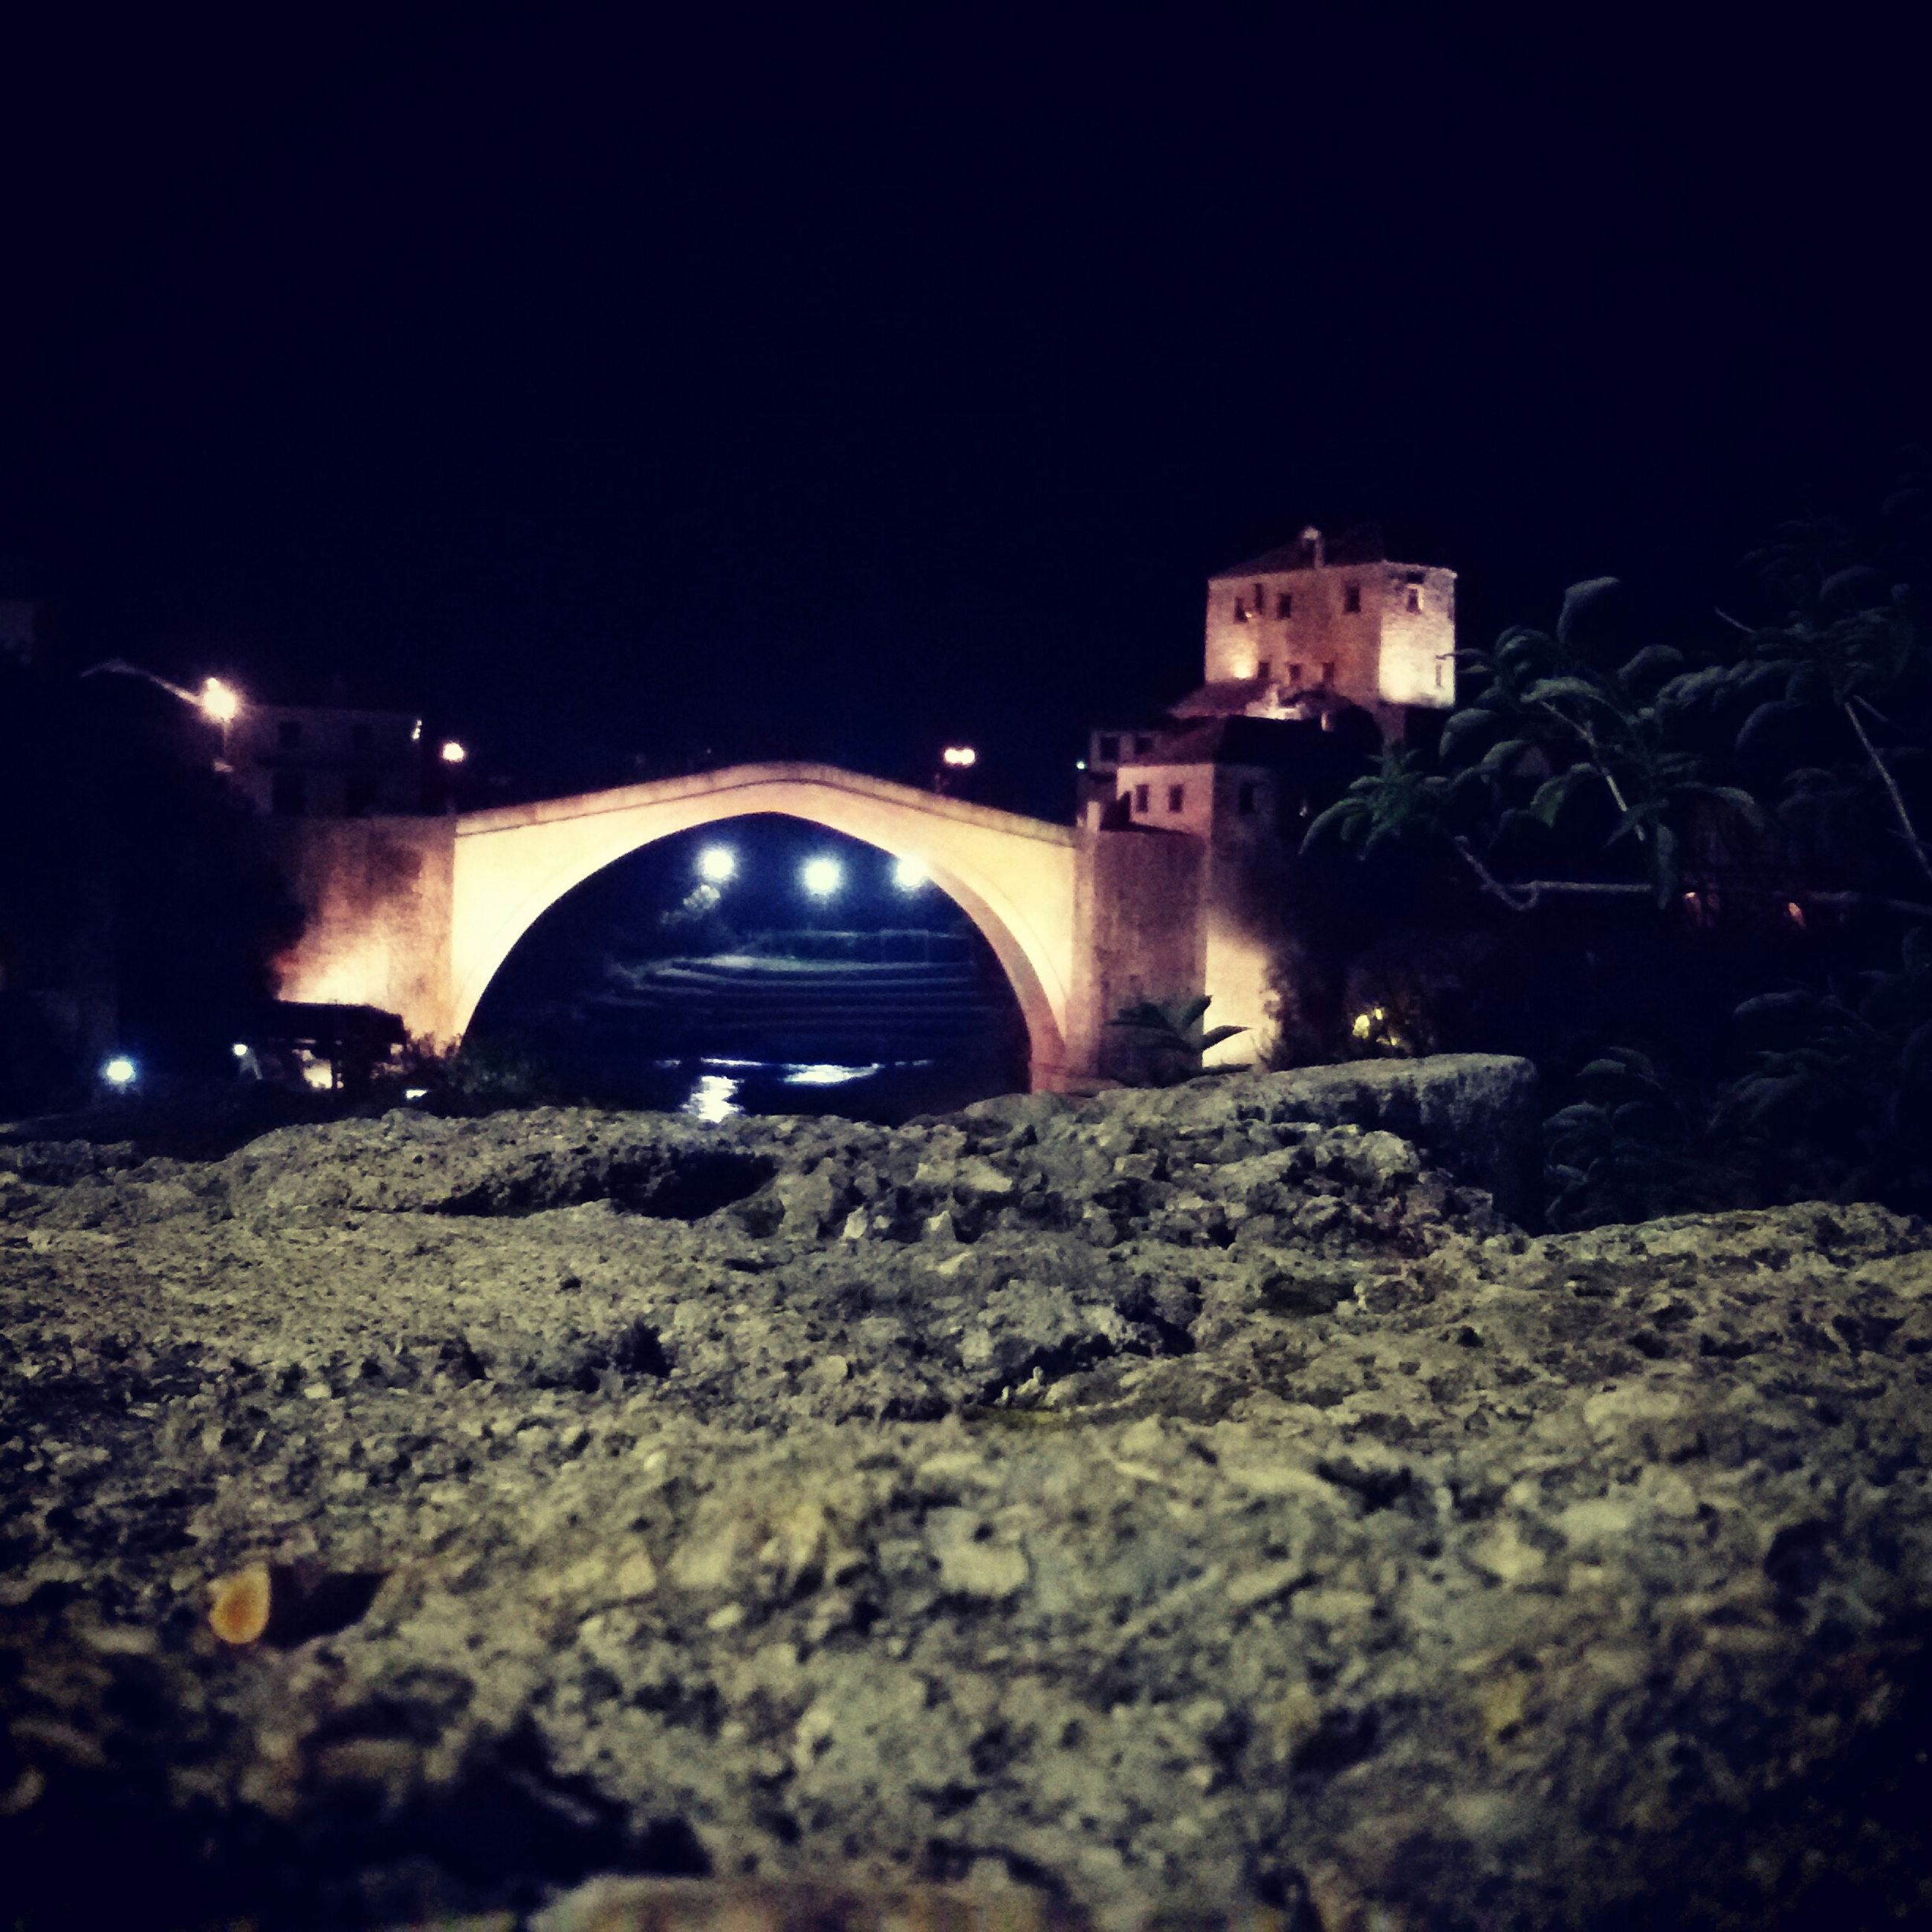 night, transportation, illuminated, copy space, clear sky, built structure, land vehicle, architecture, mode of transport, bridge - man made structure, connection, car, surface level, rock - object, water, outdoors, river, motion, building exterior, road